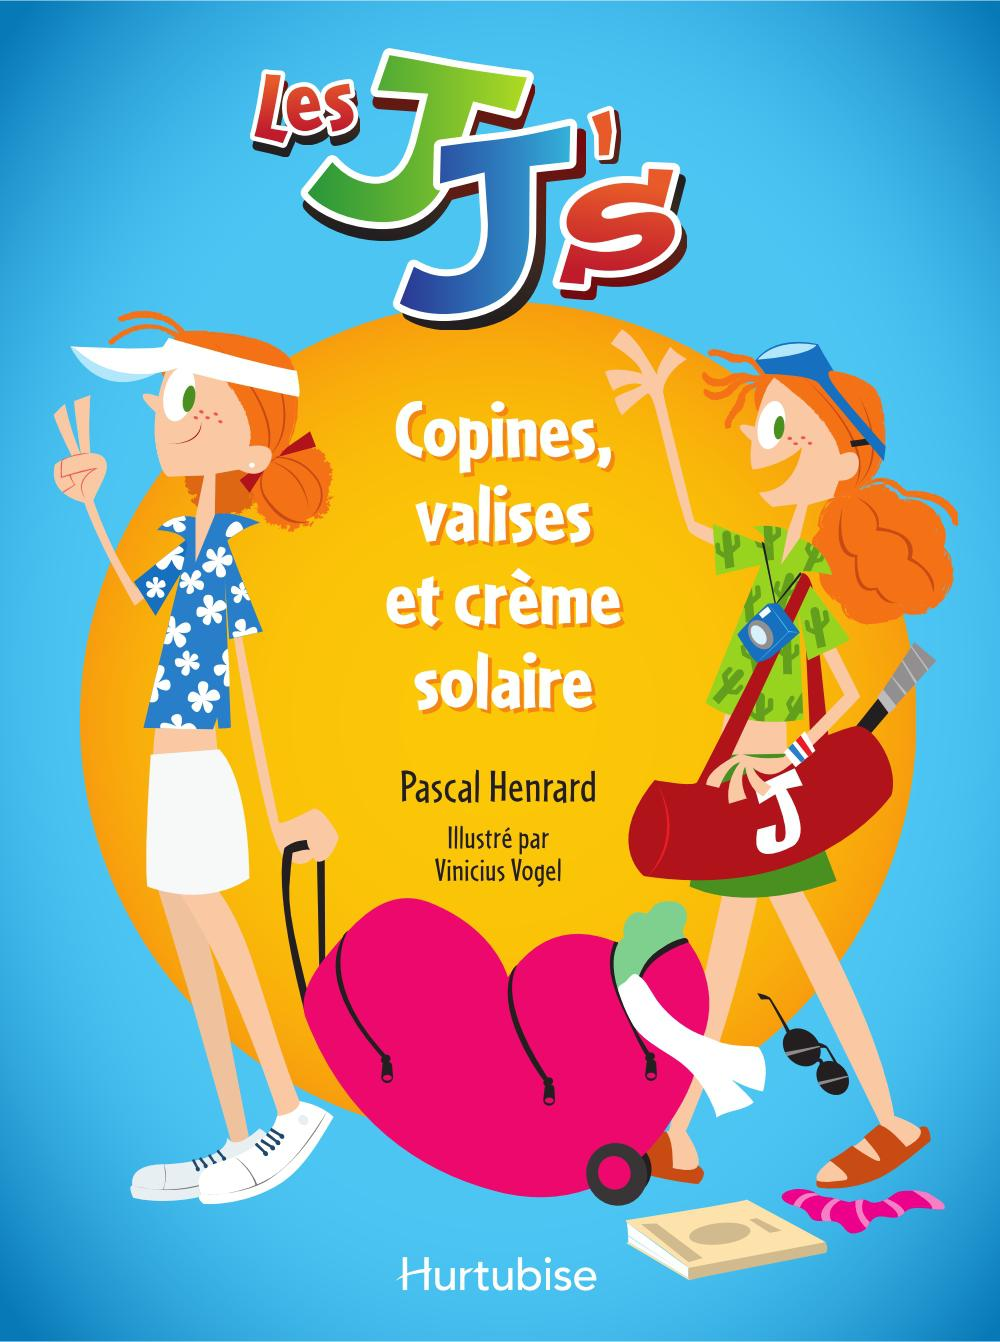 Les JJ's - Copines, valises...